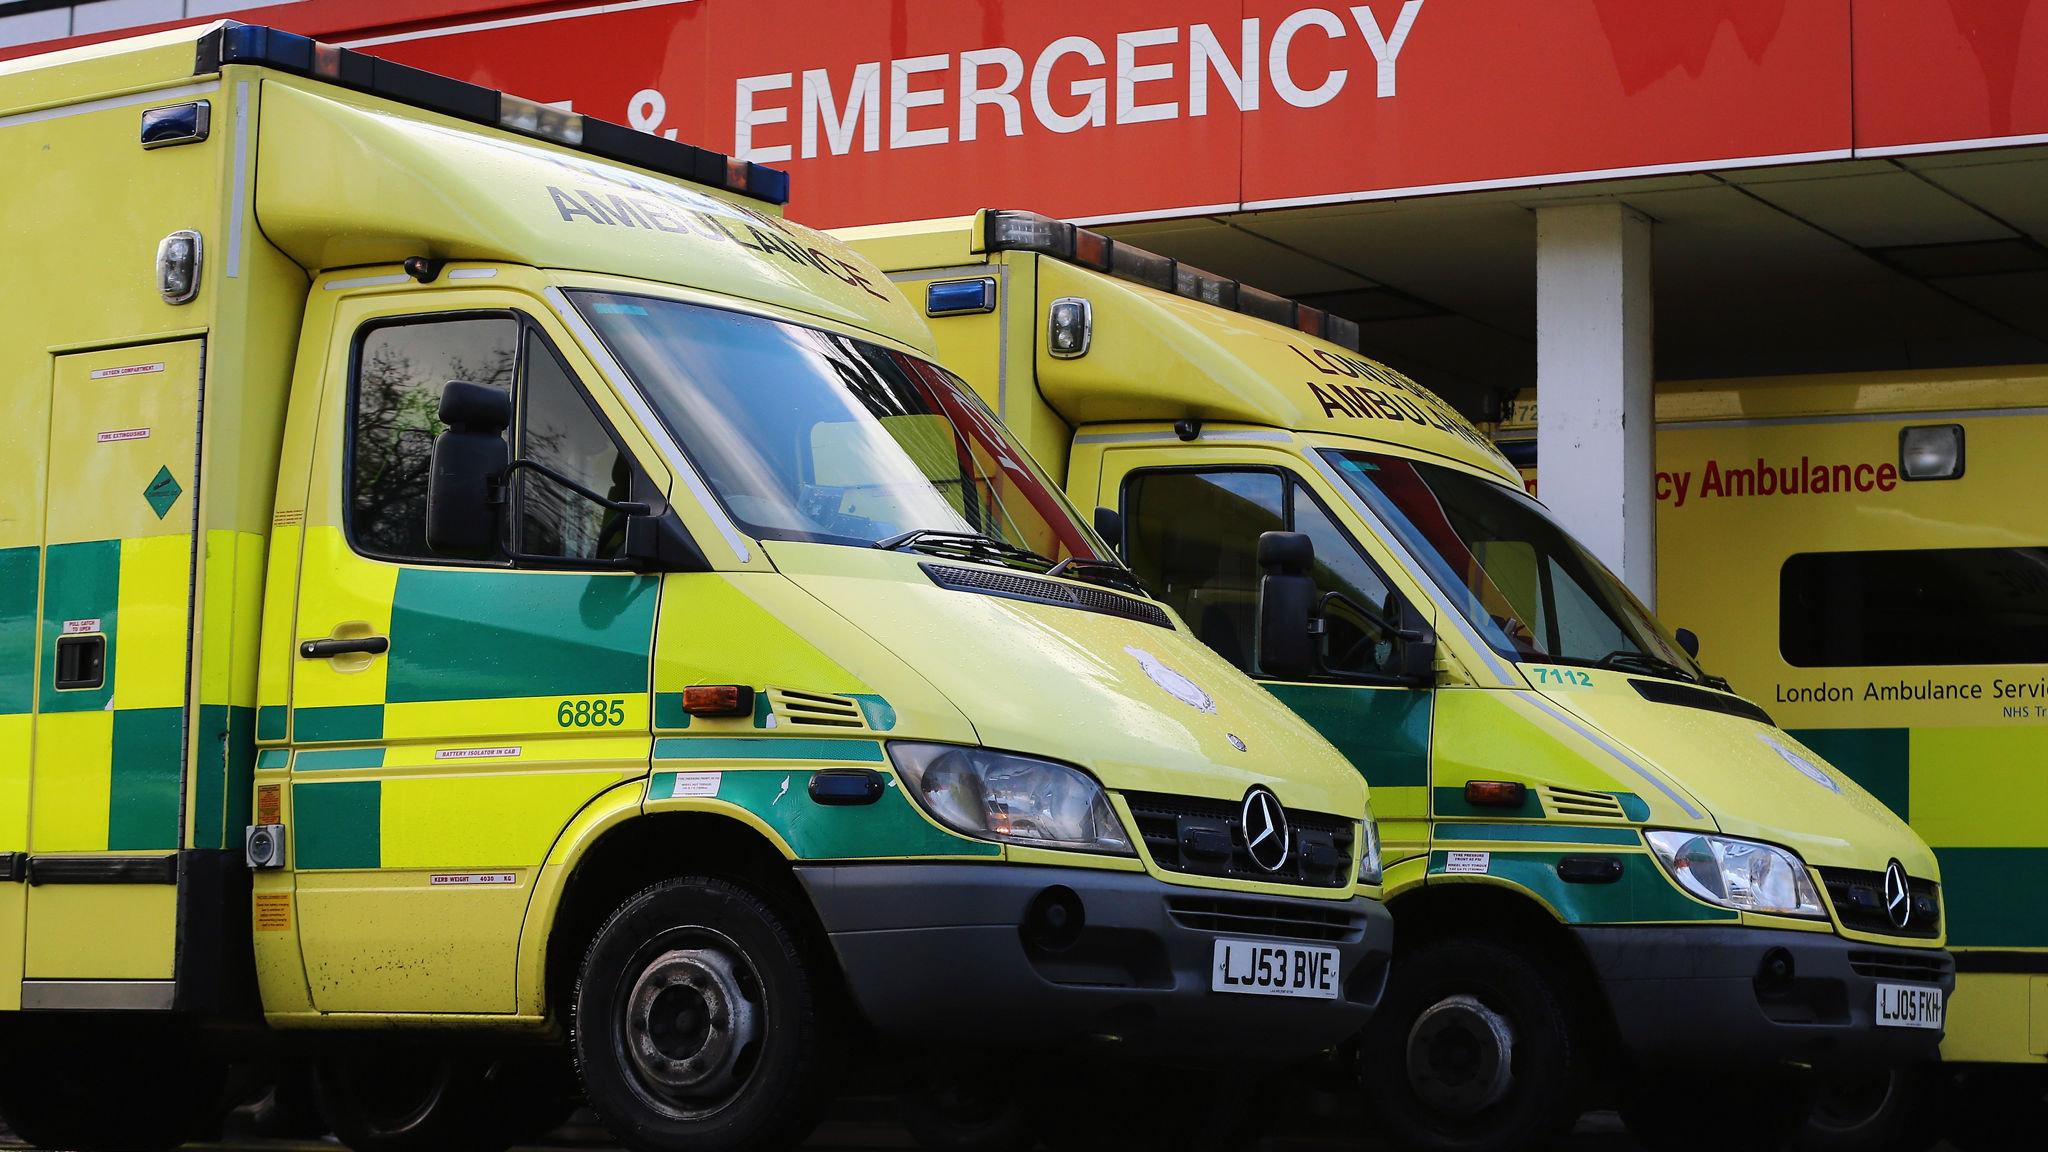 NHS misses targets for A&E waiting times in November